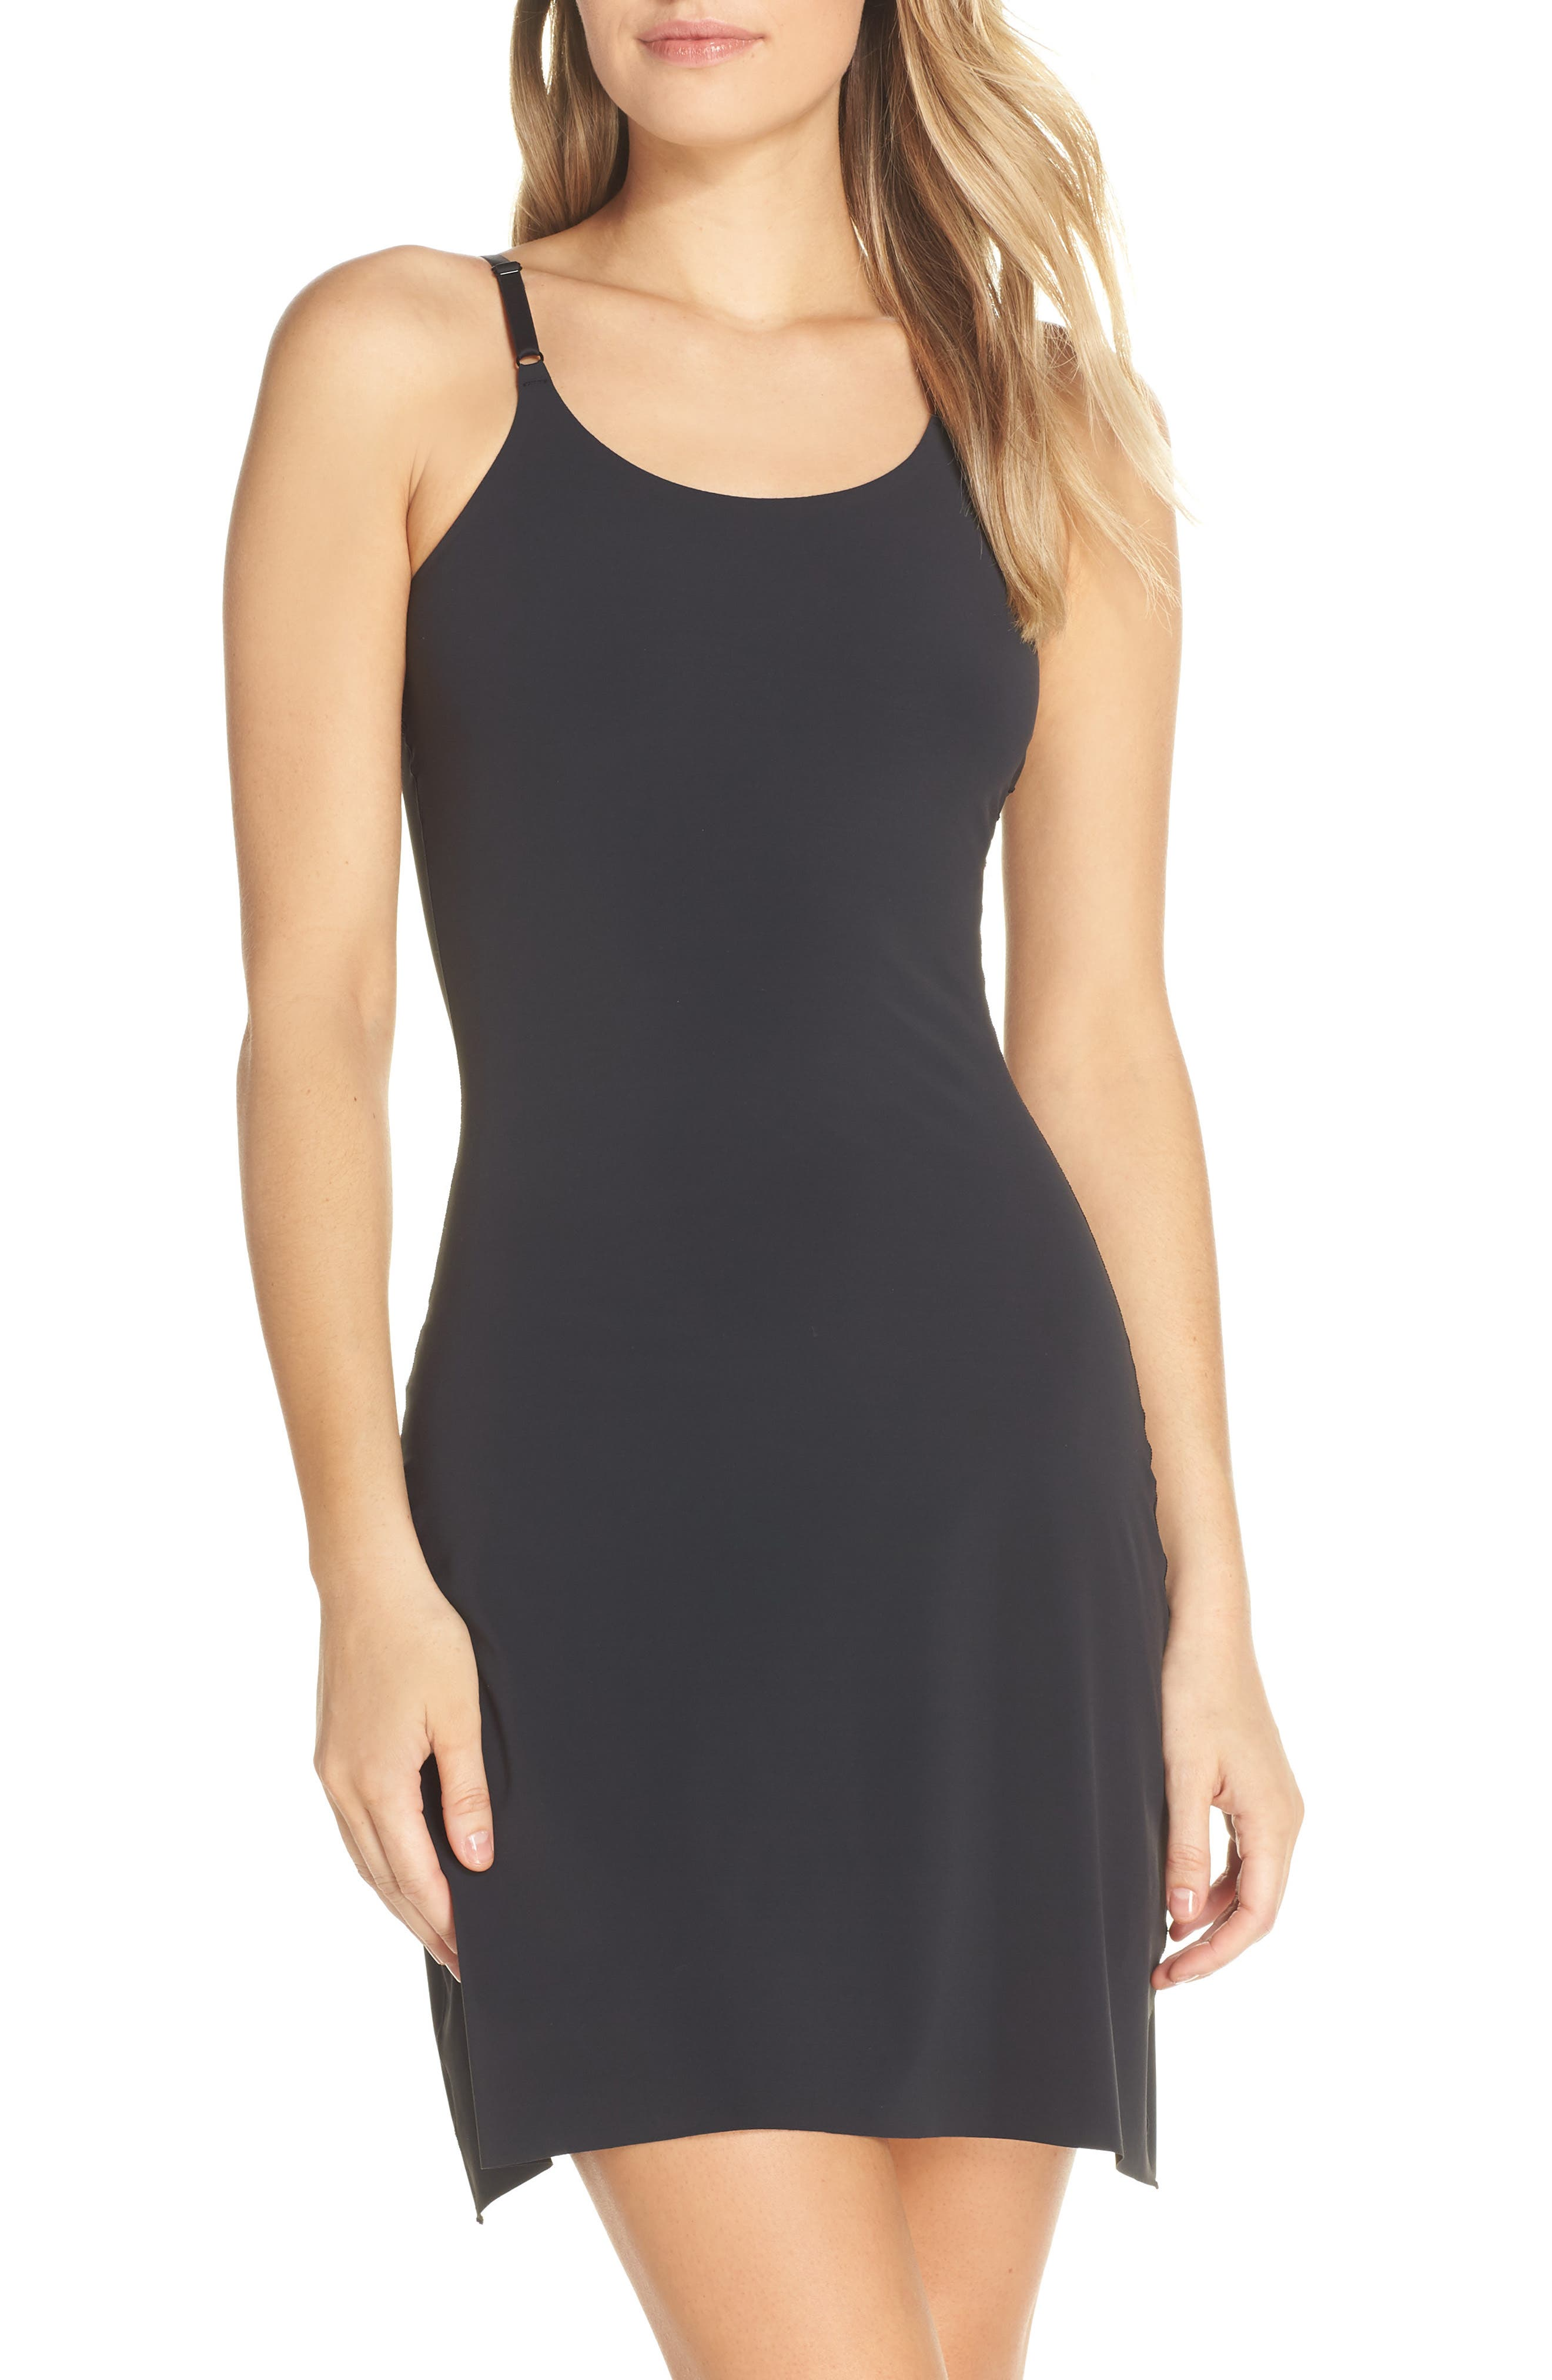 YUMMIE, Smooth Solutions A-Line Slip, Main thumbnail 1, color, BLACK